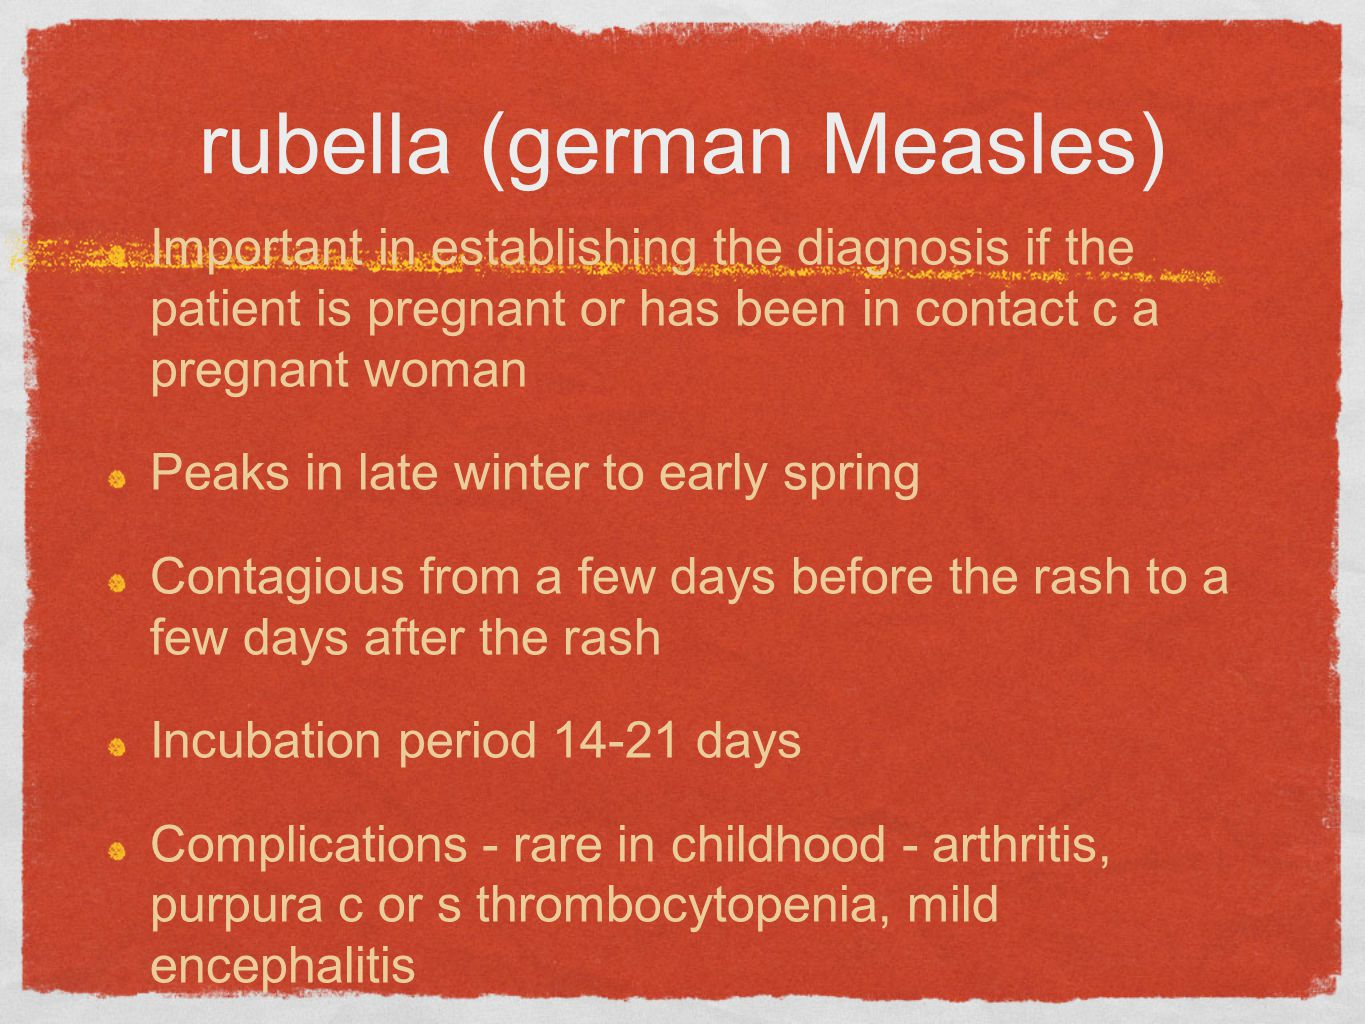 rubella (german Measles) Important in establishing the diagnosis if the patient is pregnant or has been in contact c a pregnant woman Peaks in late winter to early spring Contagious from a few days before the rash to a few days after the rash Incubation period 14-21 days Complications - rare in childhood - arthritis, purpura c or s thrombocytopenia, mild encephalitis